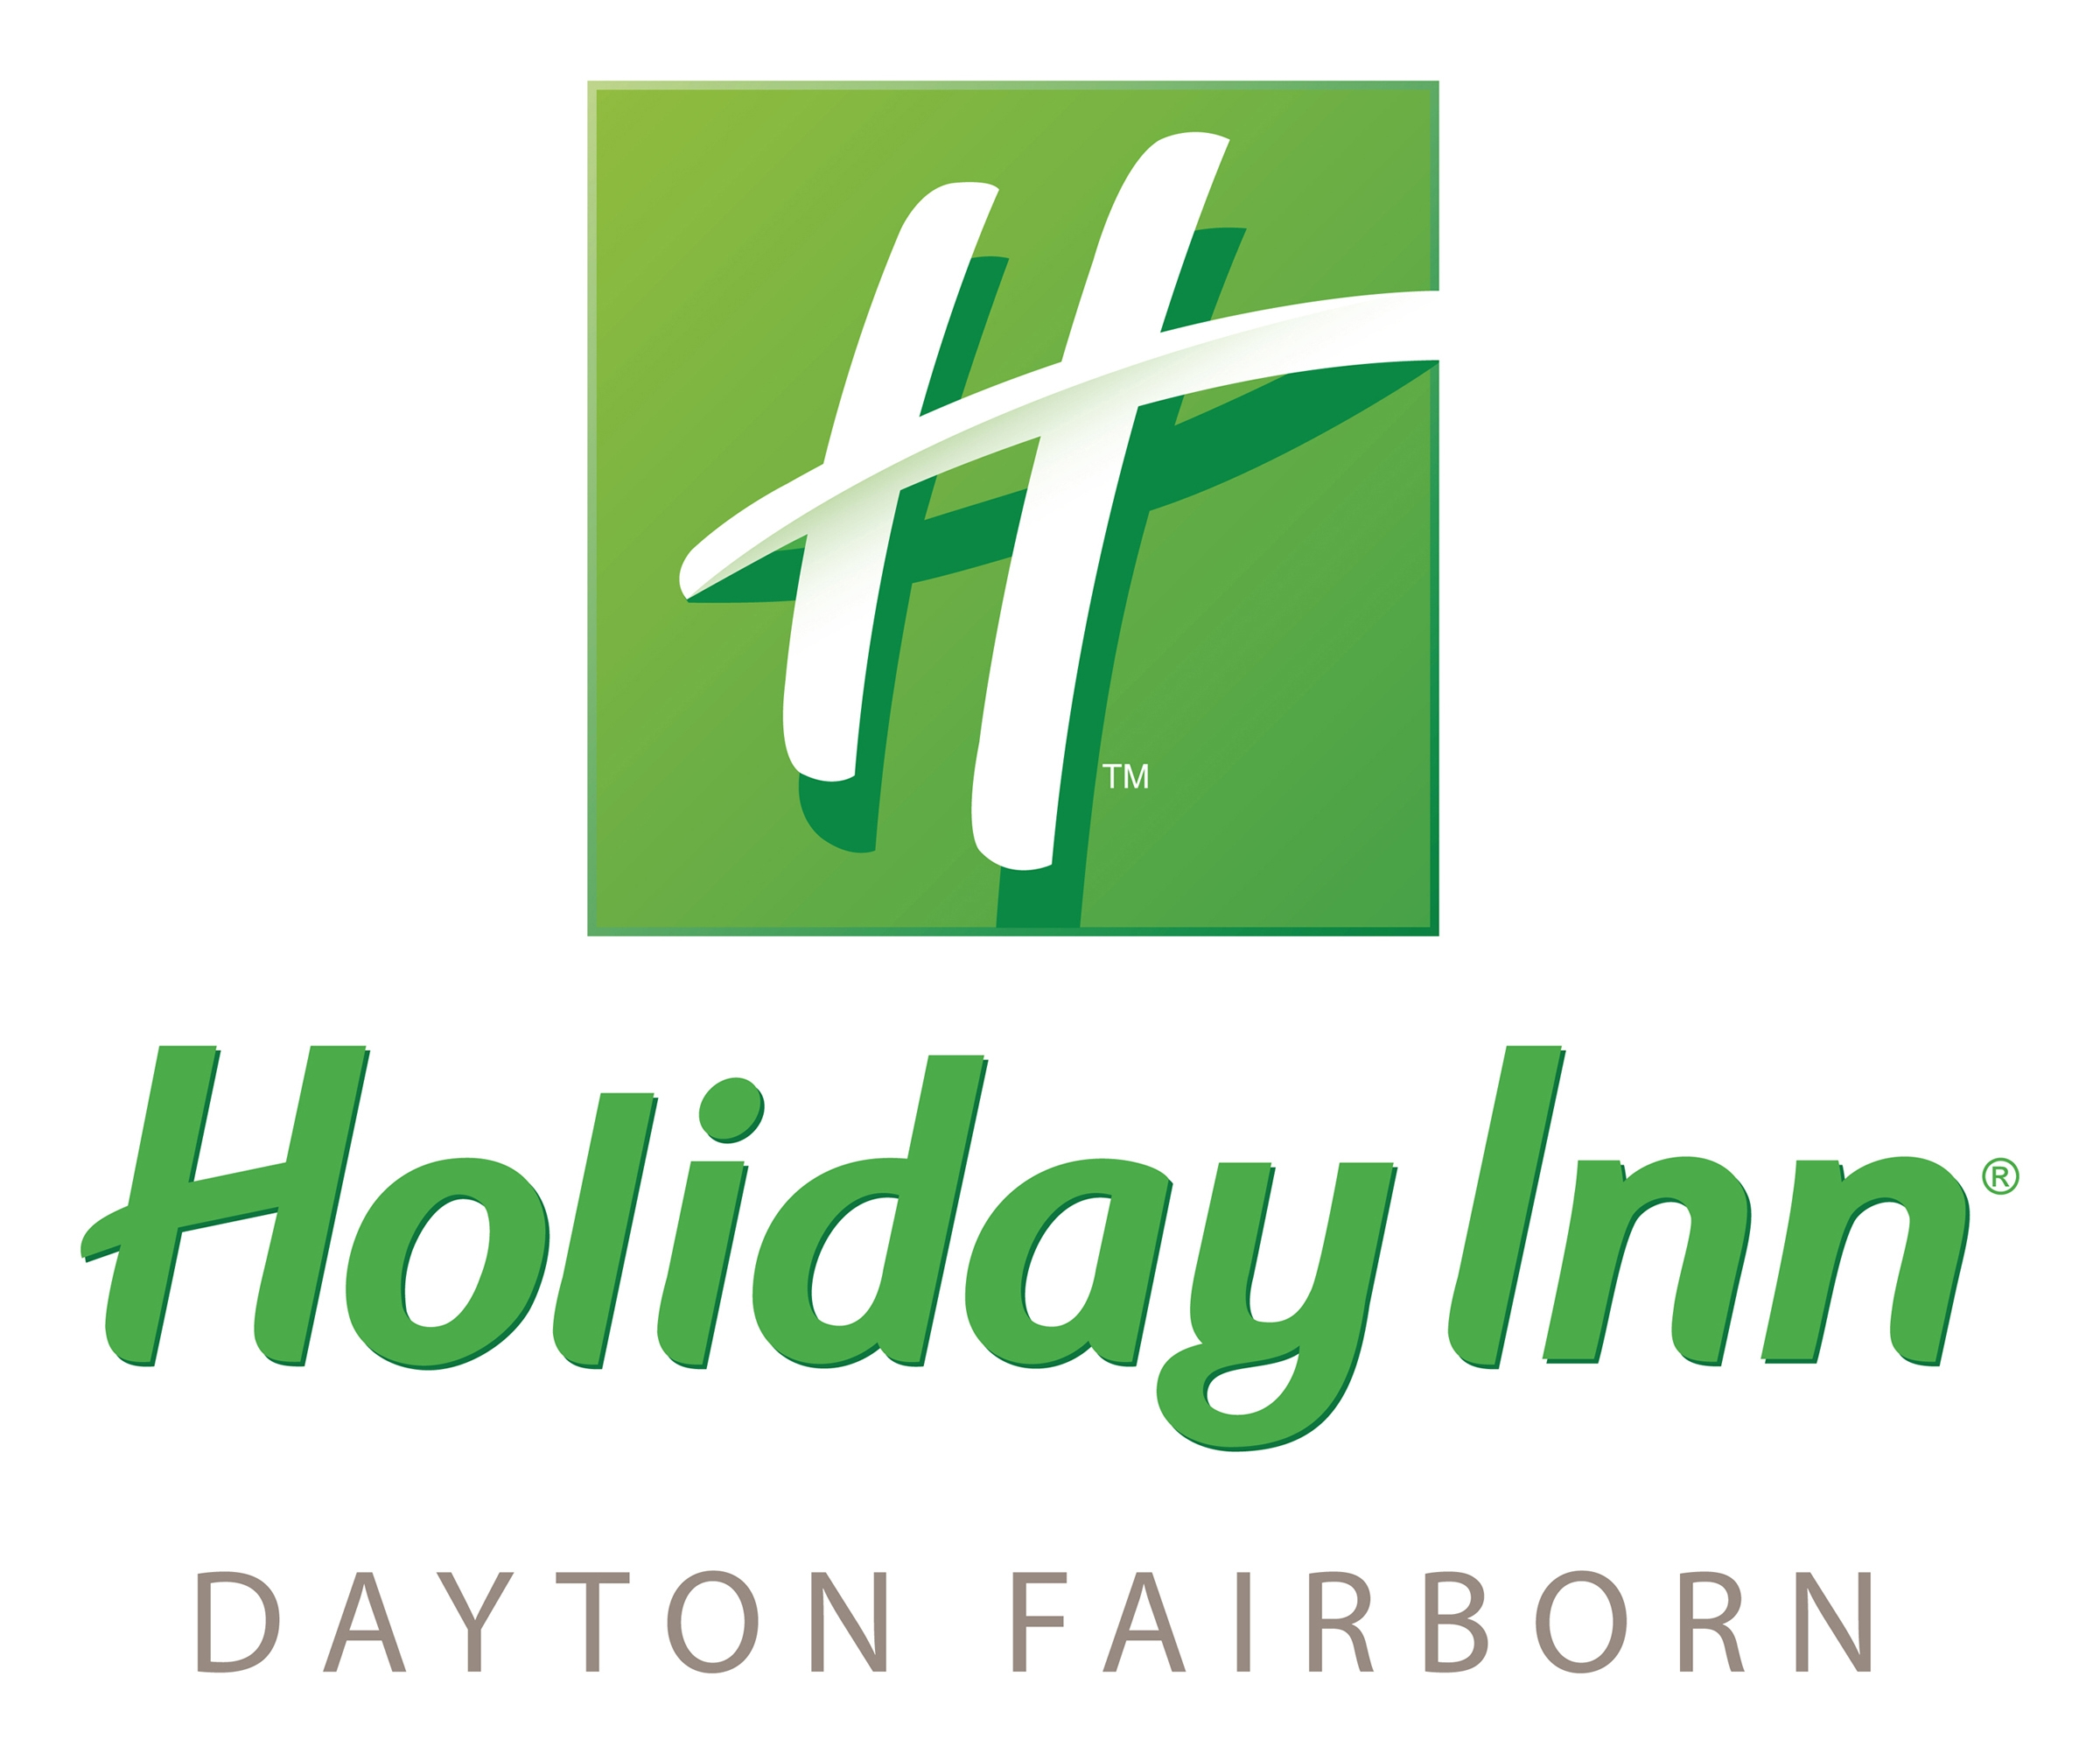 Holiday Inn NEW logo